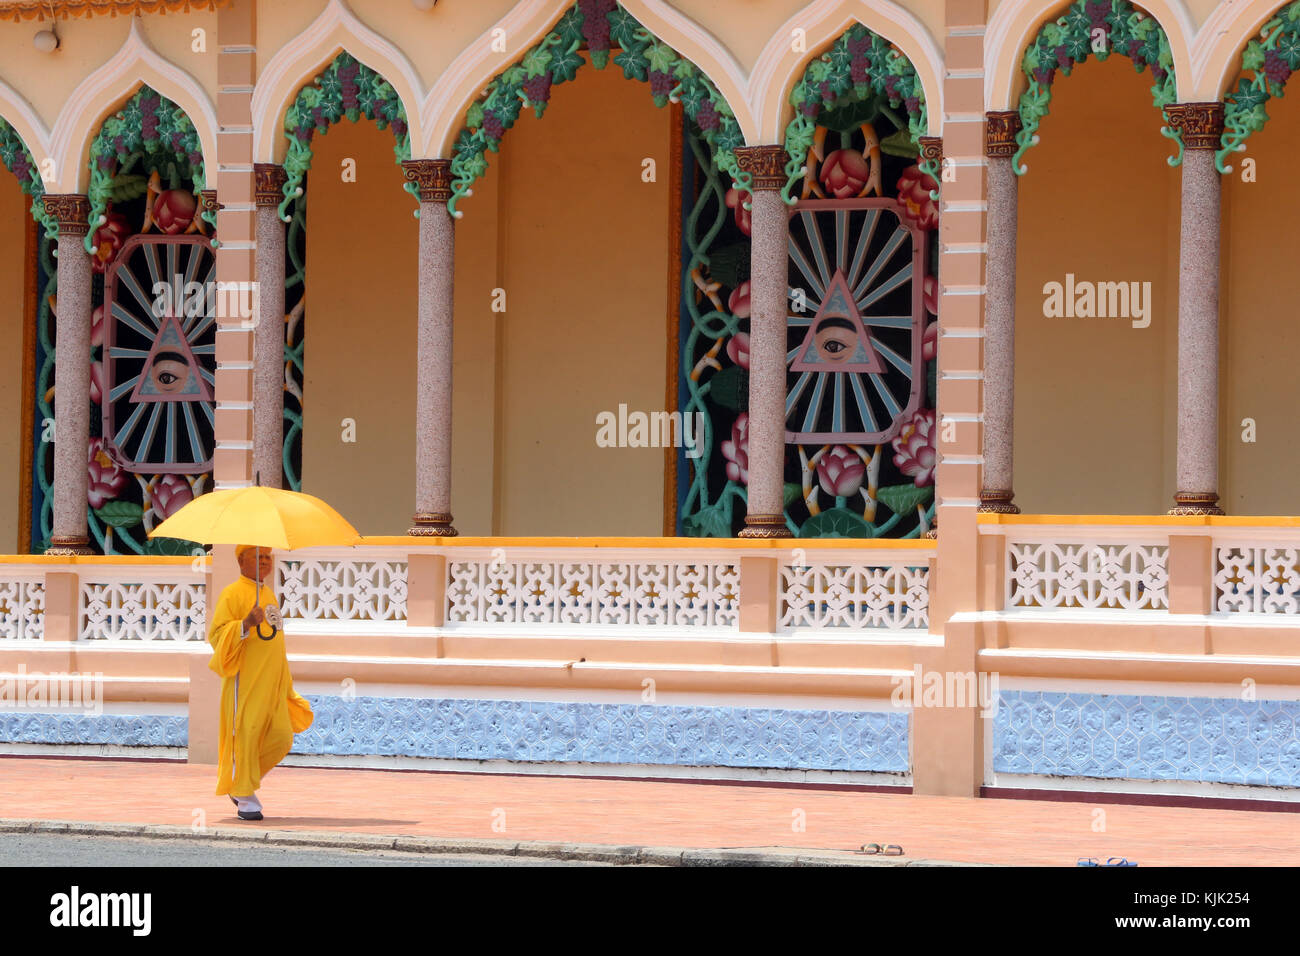 Cao Dai Holy See Temple.  Priest with yellow umbrella.  Thay Ninh. Vietnam. - Stock Image